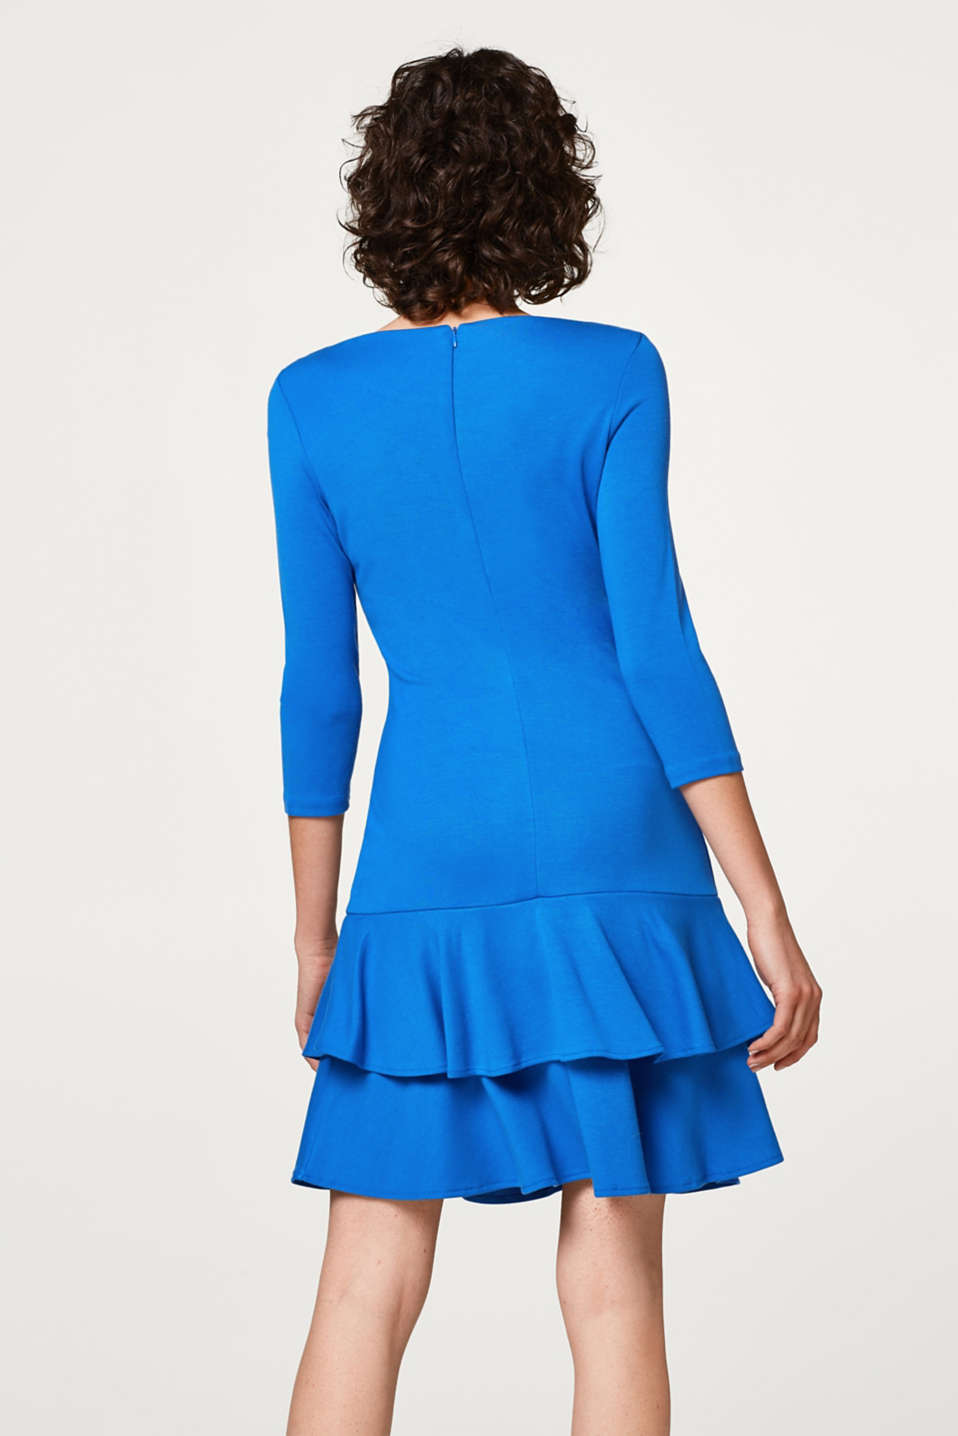 Jersey mini dress with a flounce trim at the hem